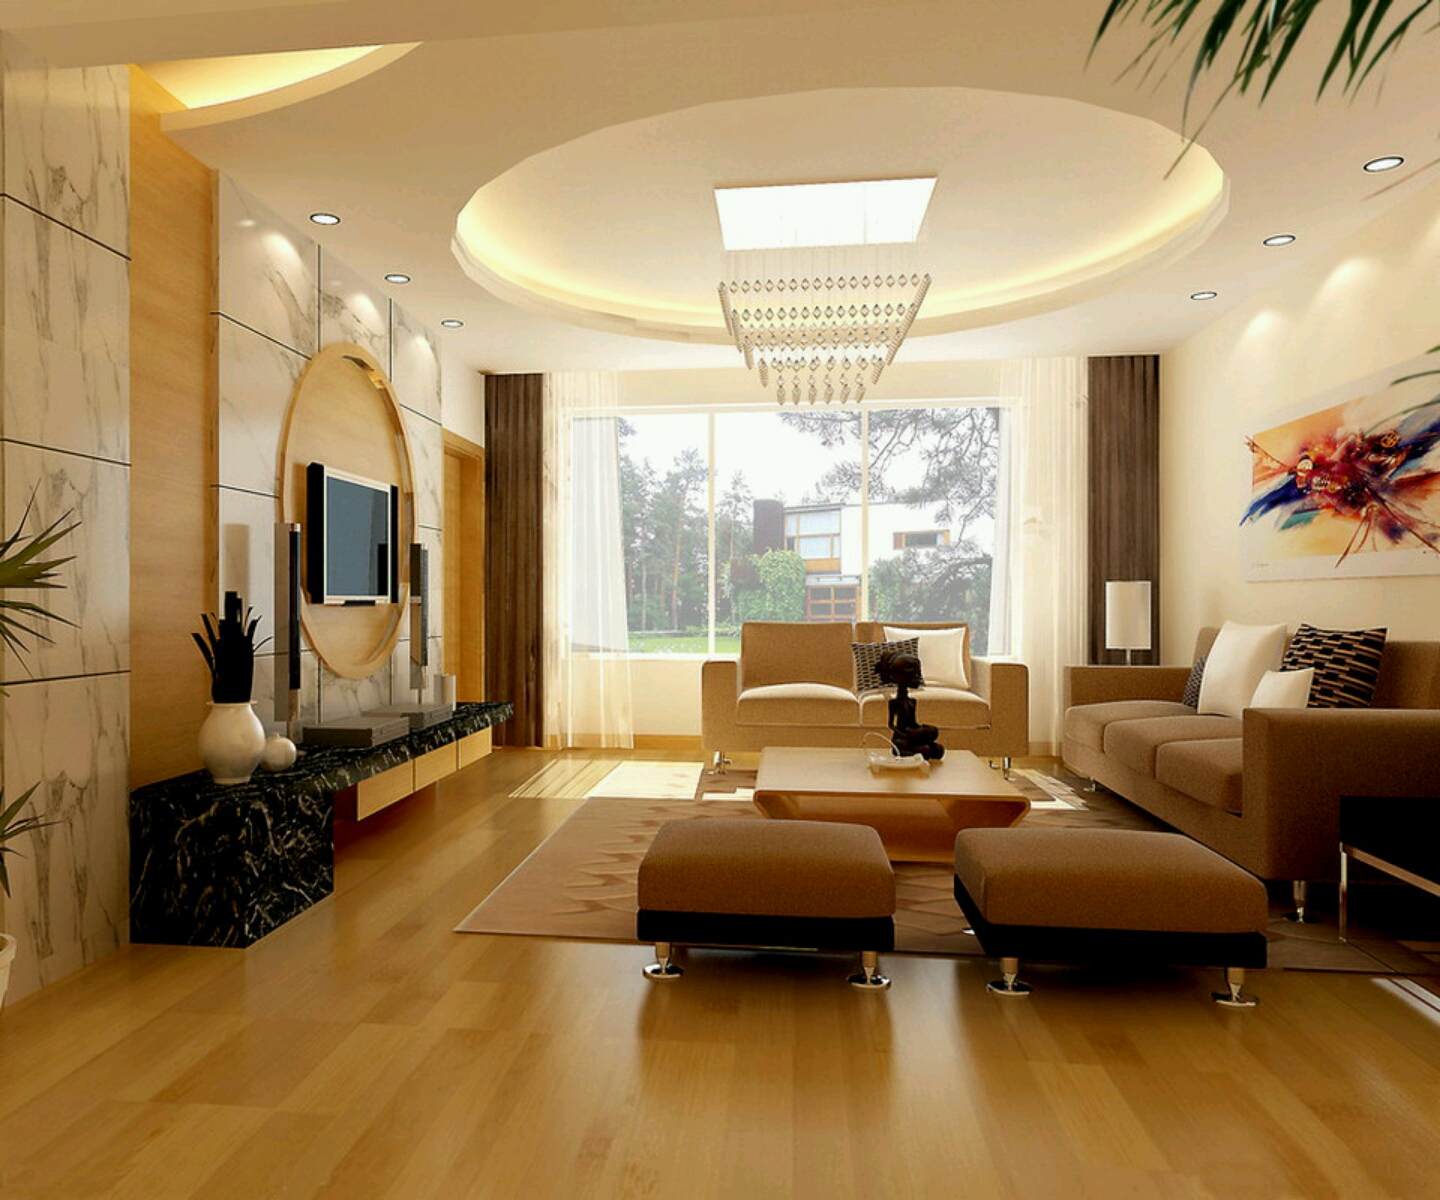 Modern interior decoration living rooms ceiling designs ideas new home designs - Ideas for room decoration ...